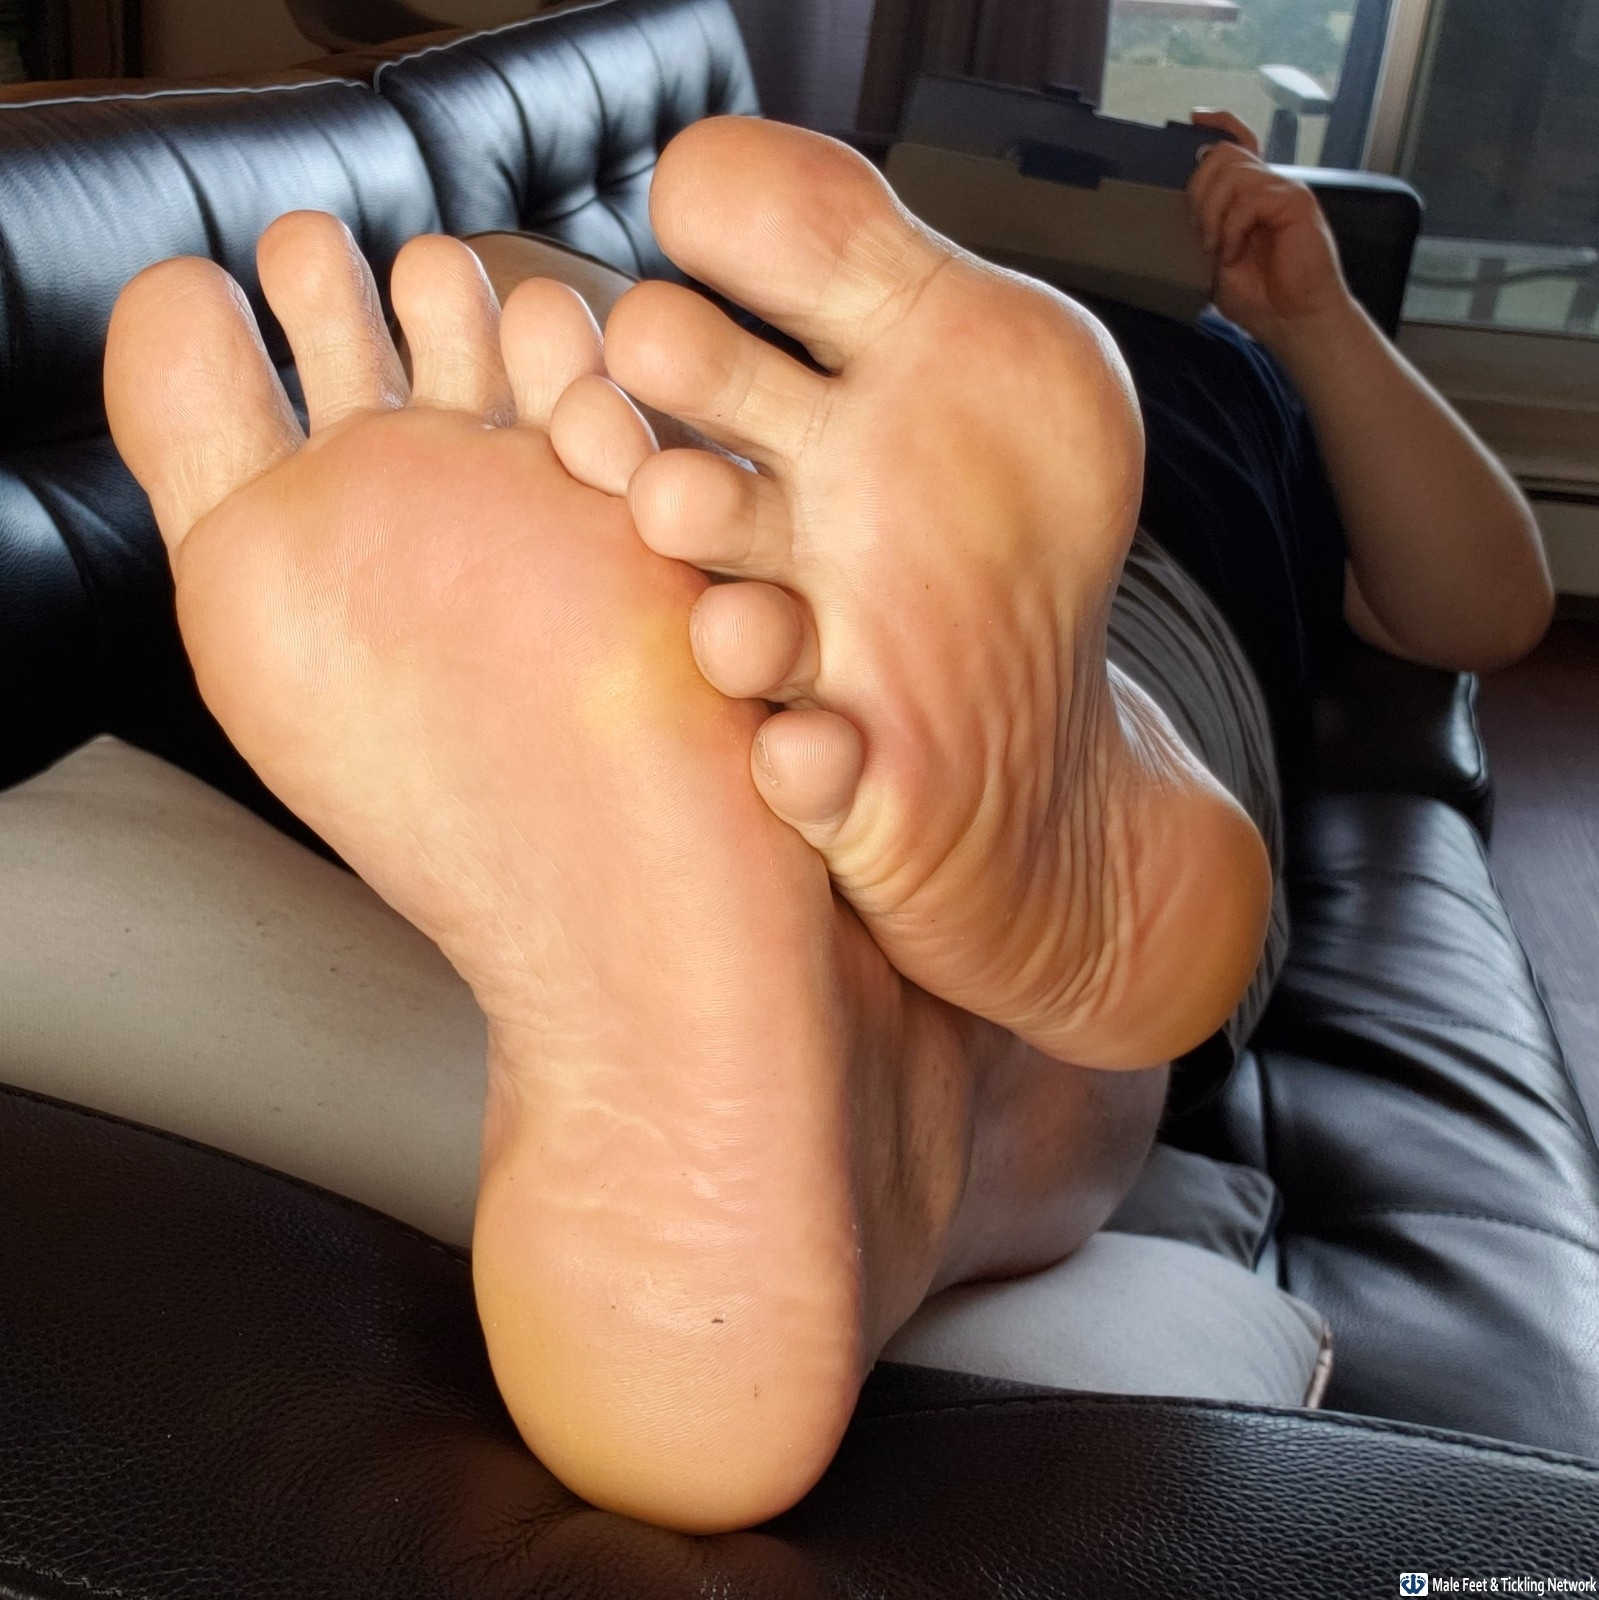 Men with feet fetish